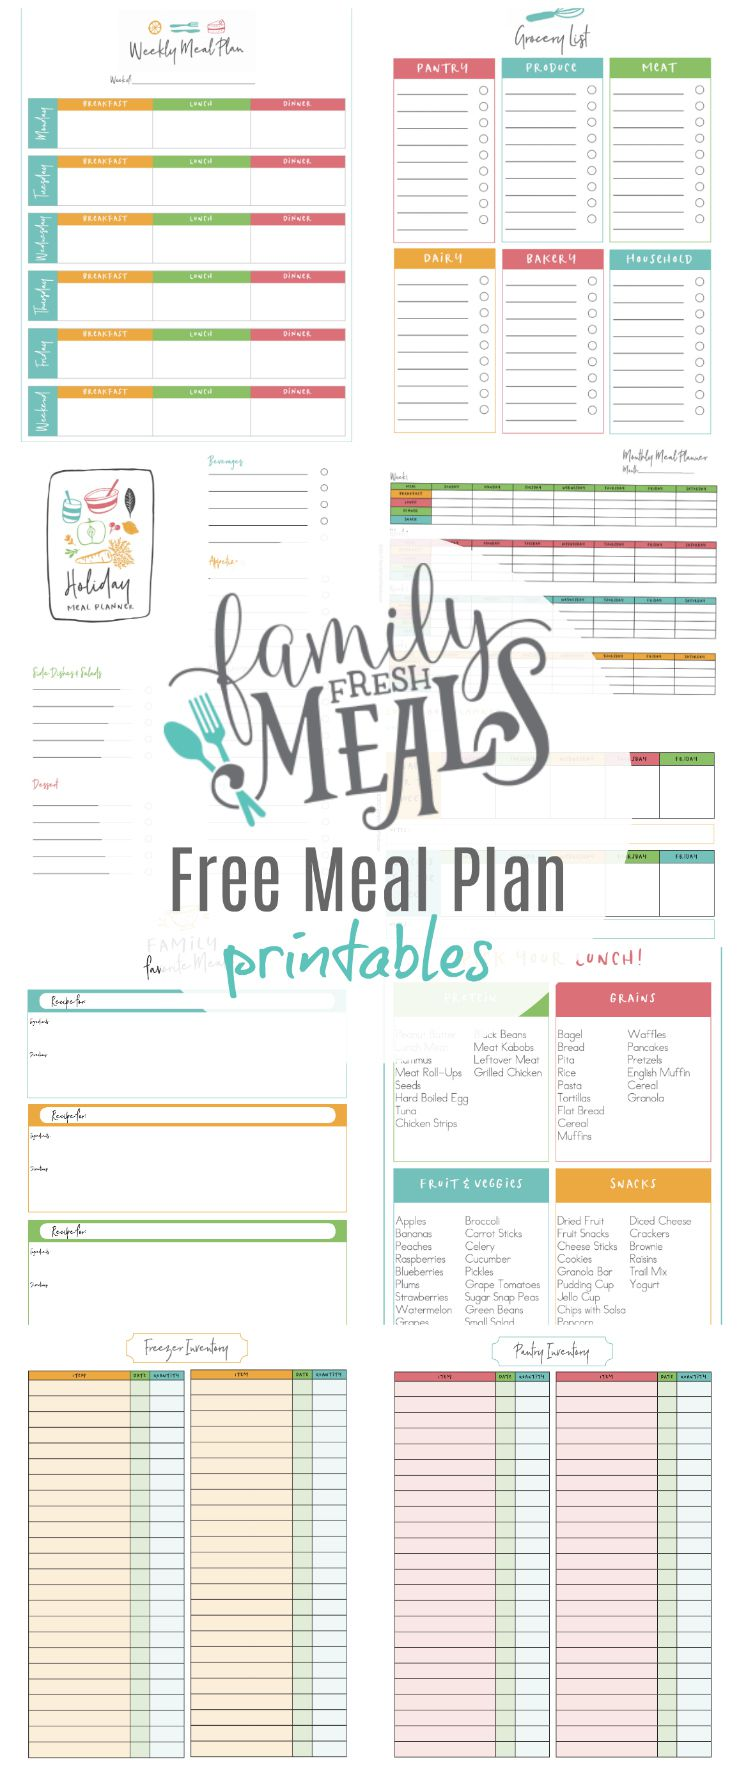 003 Stunning Free Meal Plan Template Concept  Templates Easy Keto Printable Planner For Weight LosFull